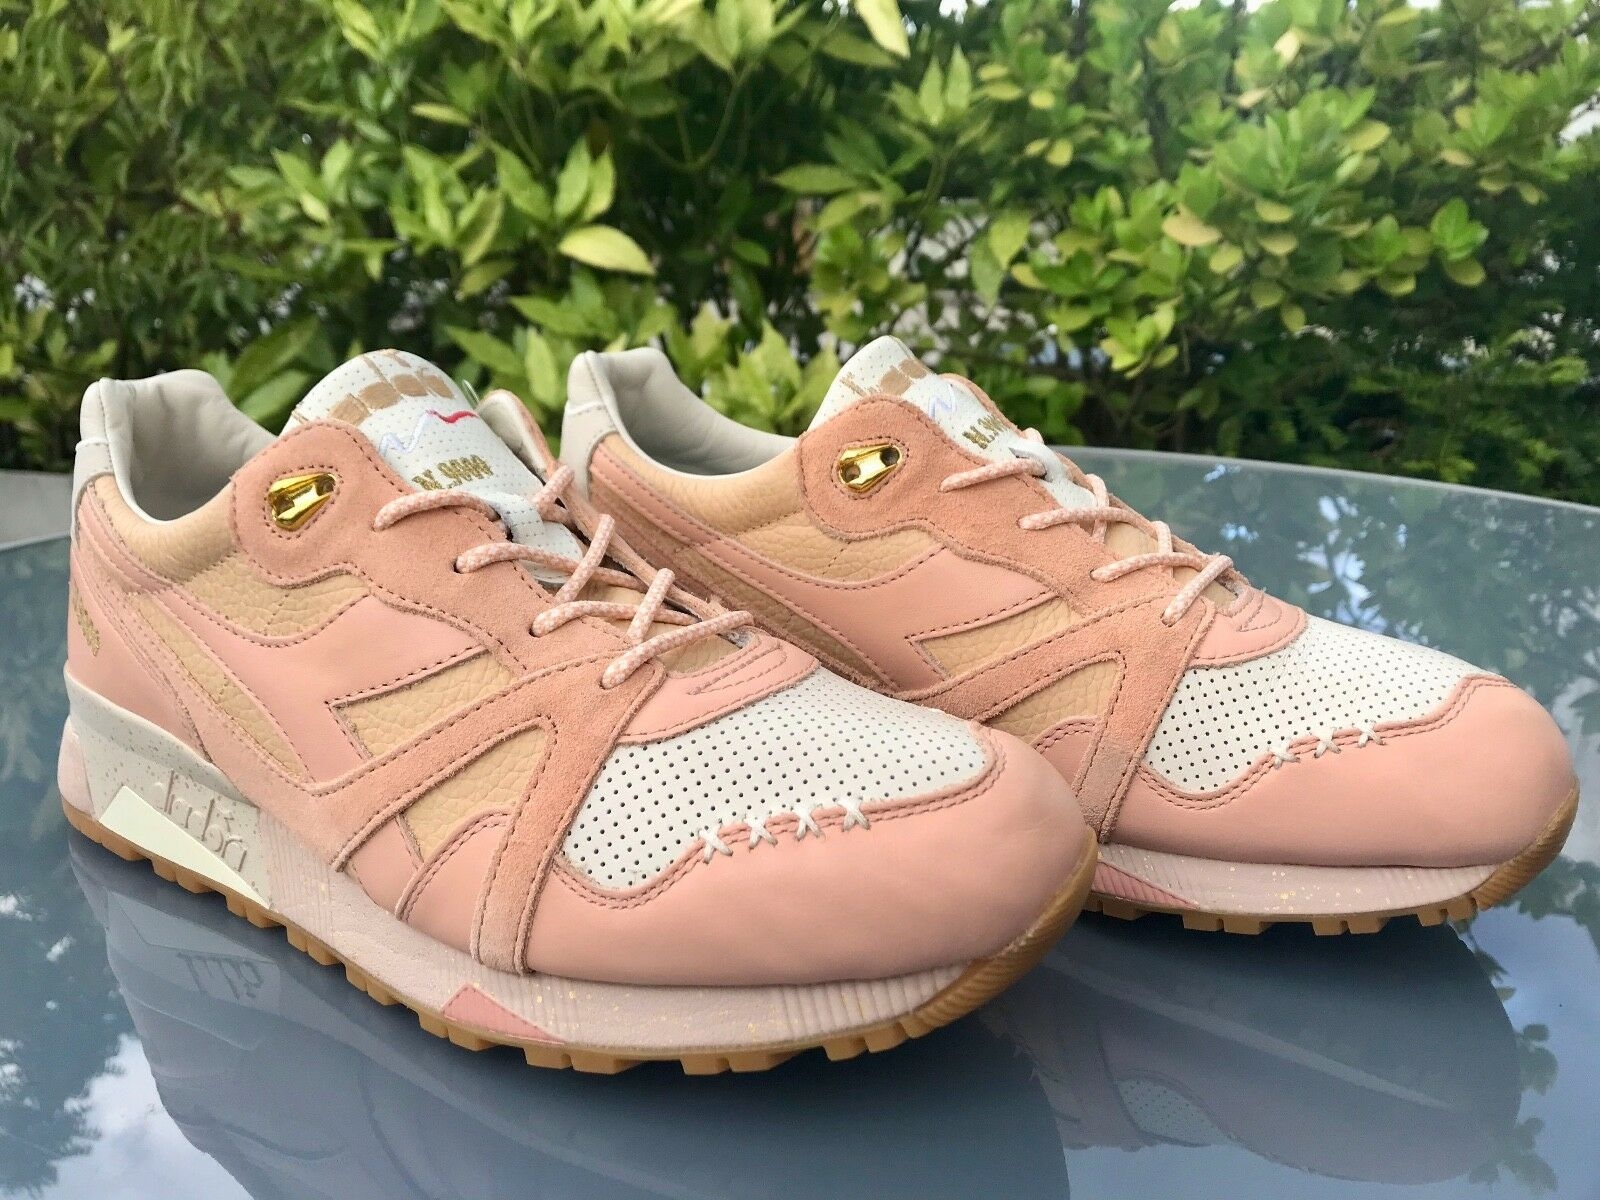 Limited Ed. FEATURE  Diadora N9000 x FEATURE Ed. Ice Cream Strawberry Peach EU 44,5 US10,5 7c1238